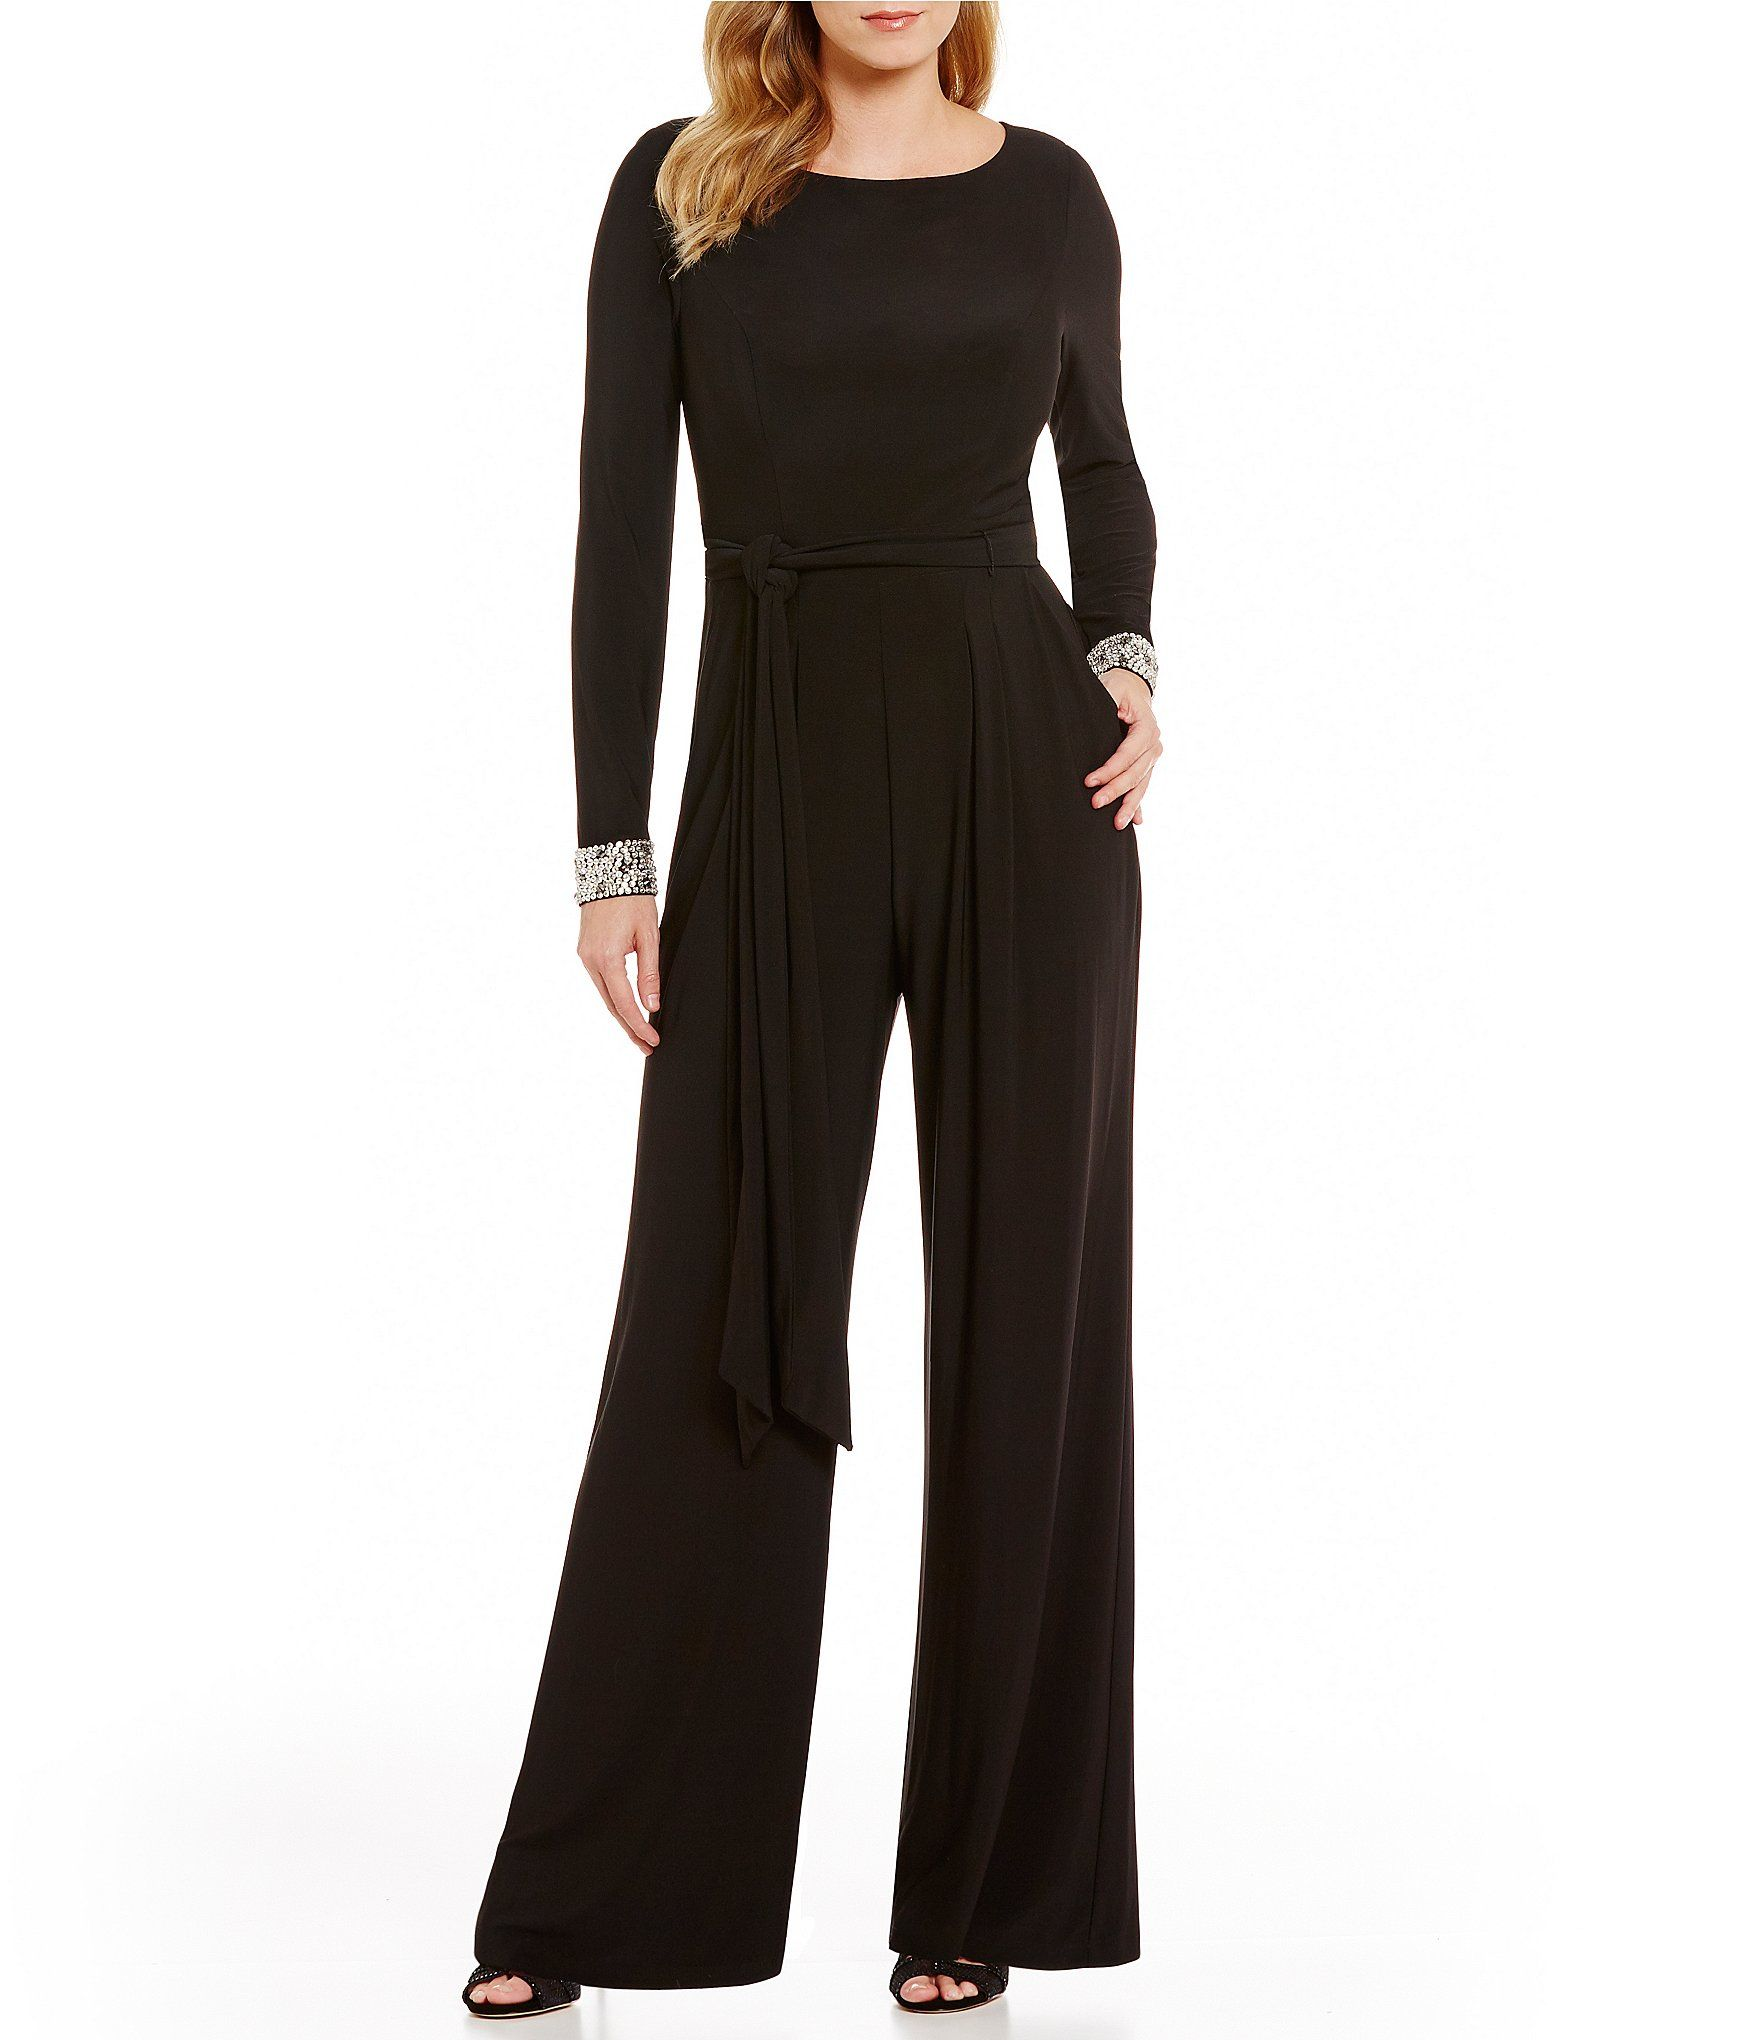 Vince Camuto Beaded Cuff Long Sleeve Jumpsuit Dillards Leadership